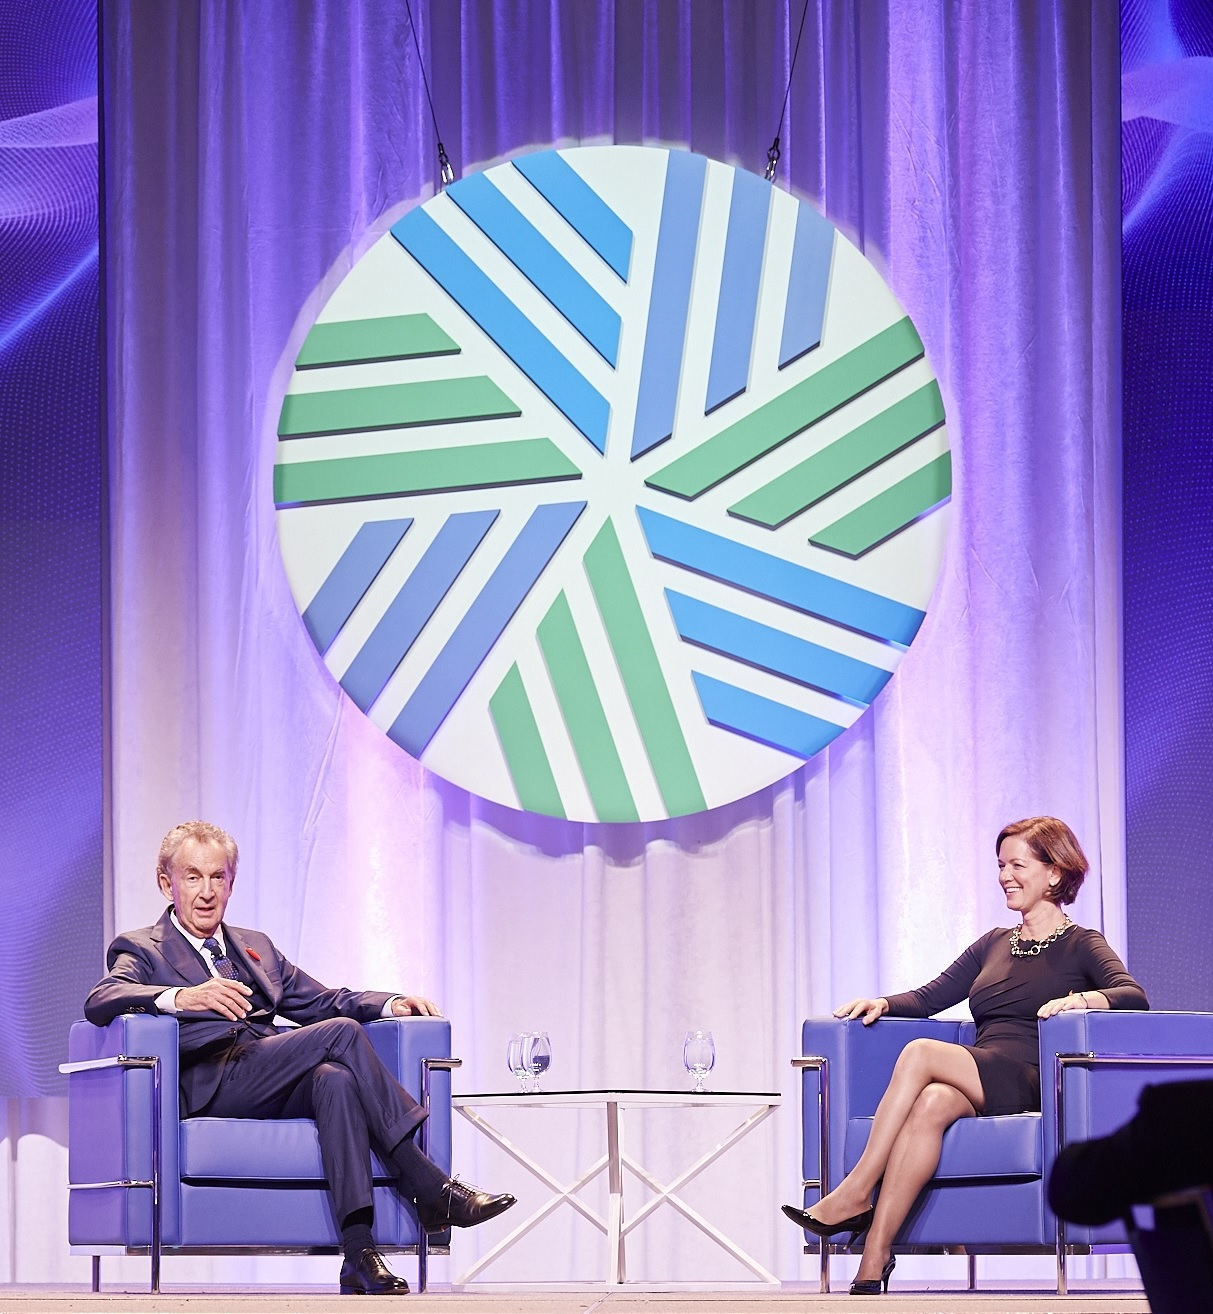 Onex Corporation's Chairman, Founder and Chief Executive Officer, Gerald Schwartz Shares his Insights at the 2019 Annual Investment Dinner